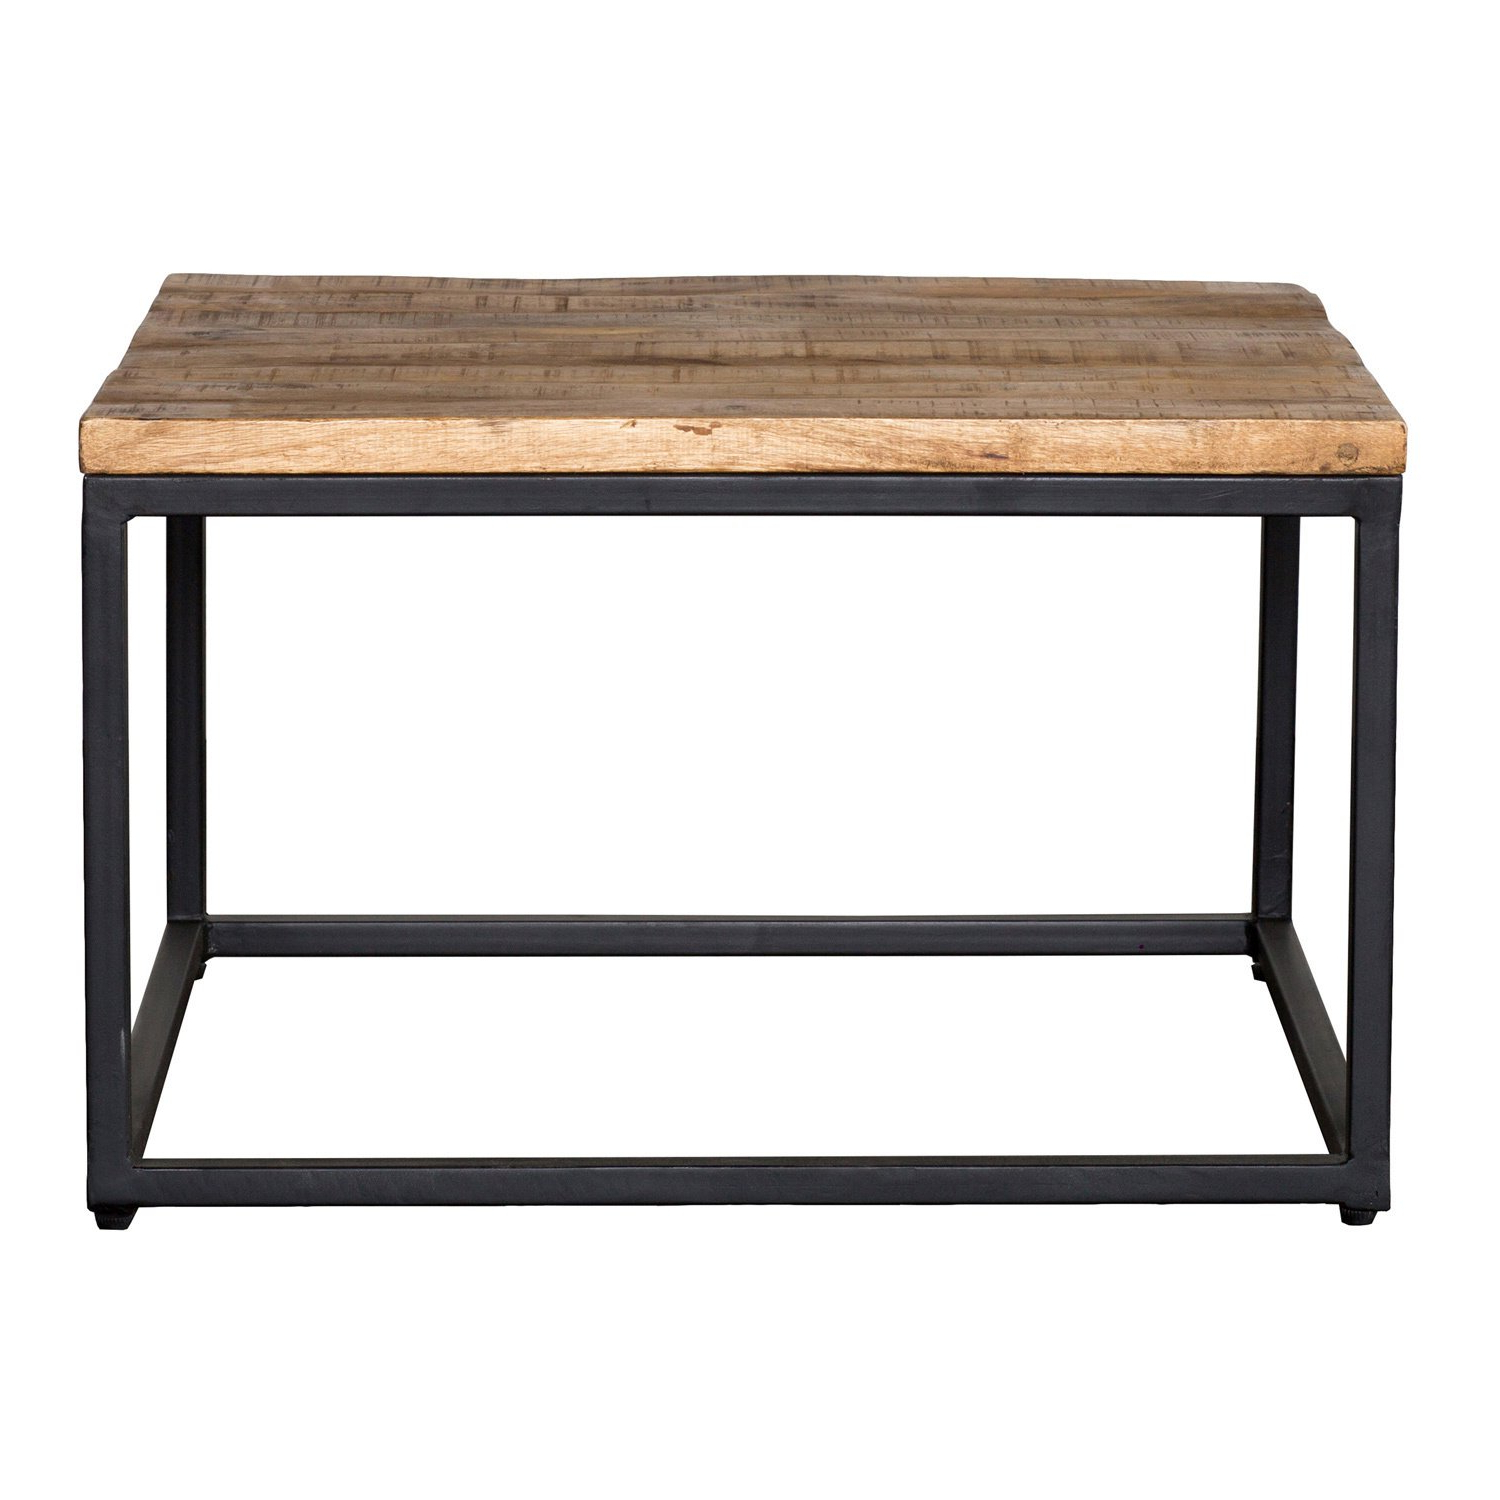 Most Up To Date Shop Paris Natural Wood And Iron 30 Inch Square Coffee Table Within Iron Wood Coffee Tables With Wheels (View 12 of 20)